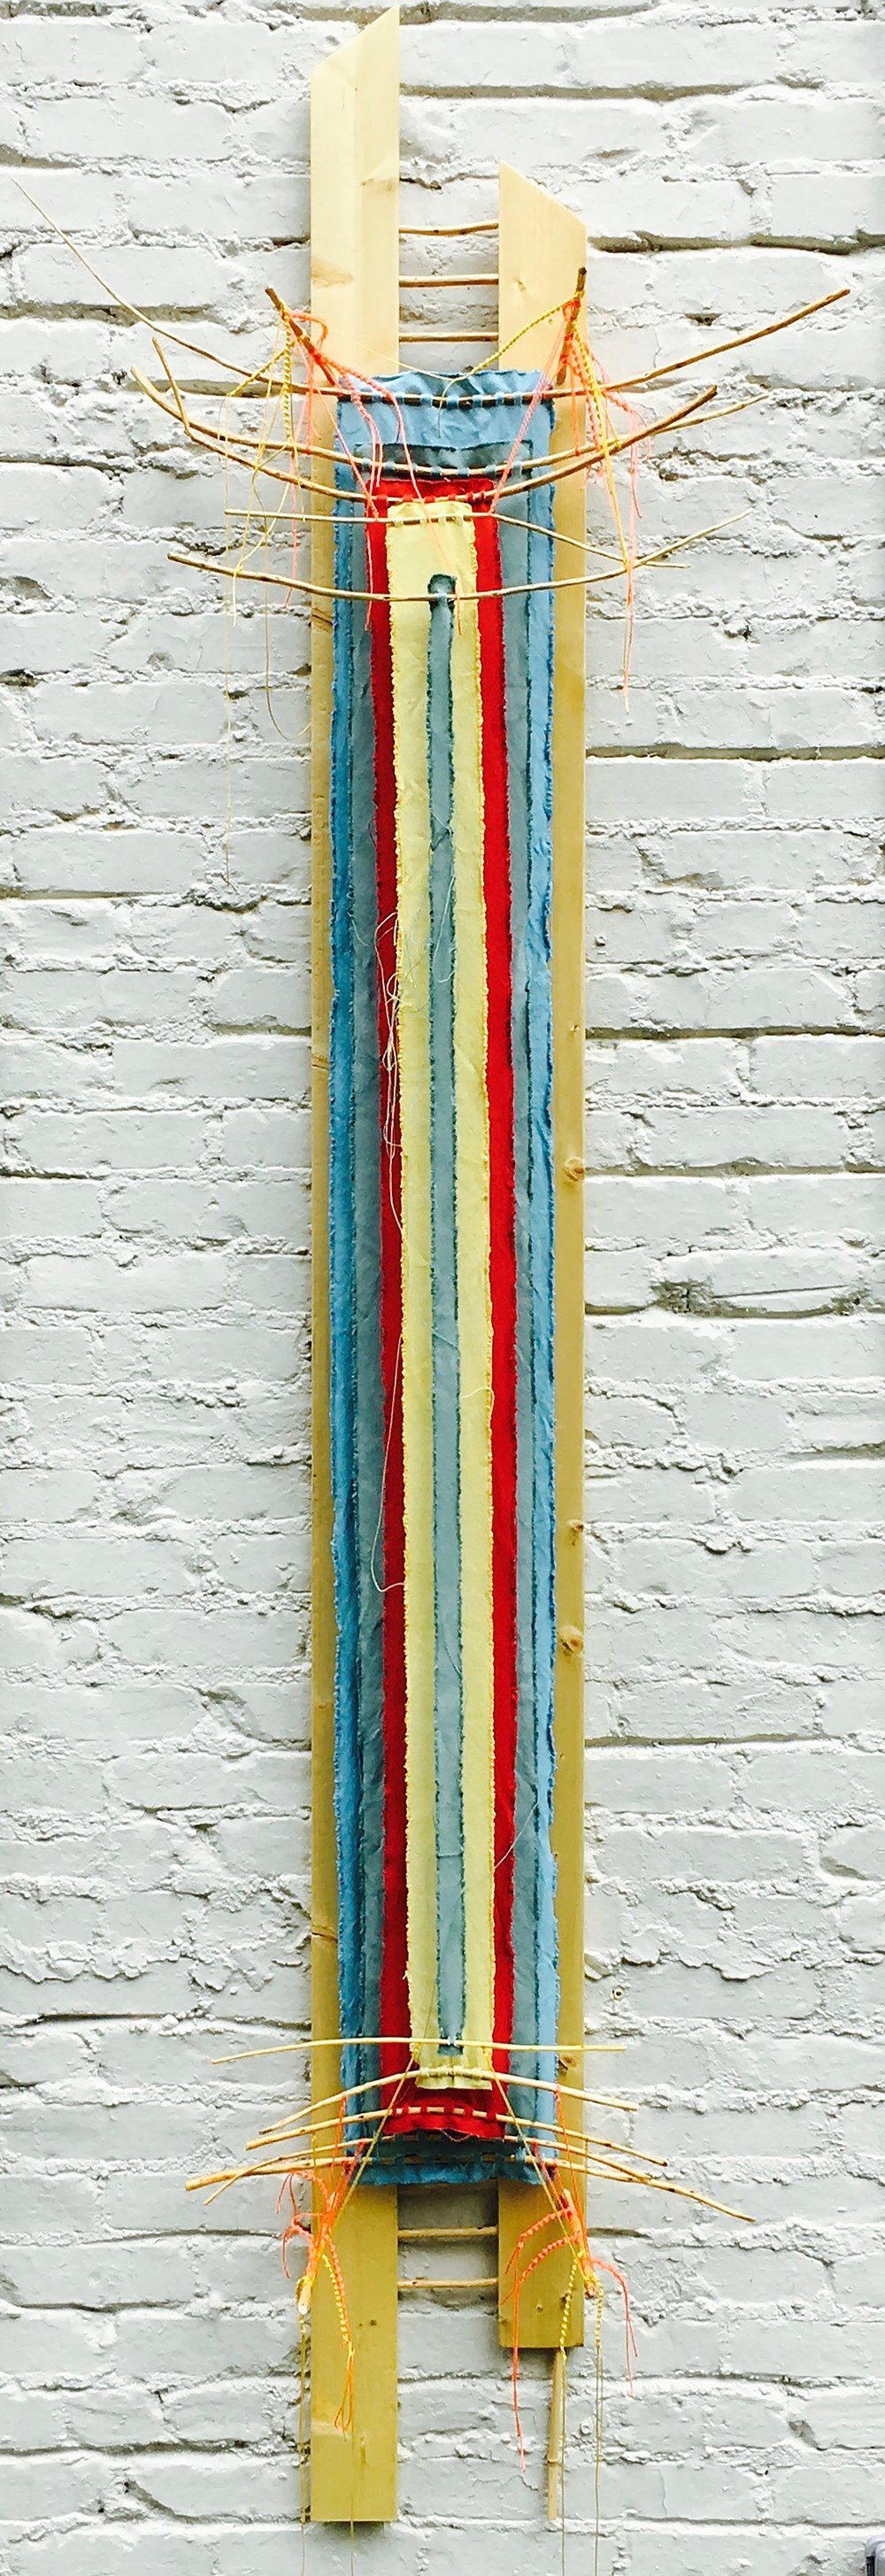 "Twin-entangled Stele, backward glance   2017 · found board/sticks, cedar pegs, canvas, string, dye, varnish · 101""x33""x7.5"""